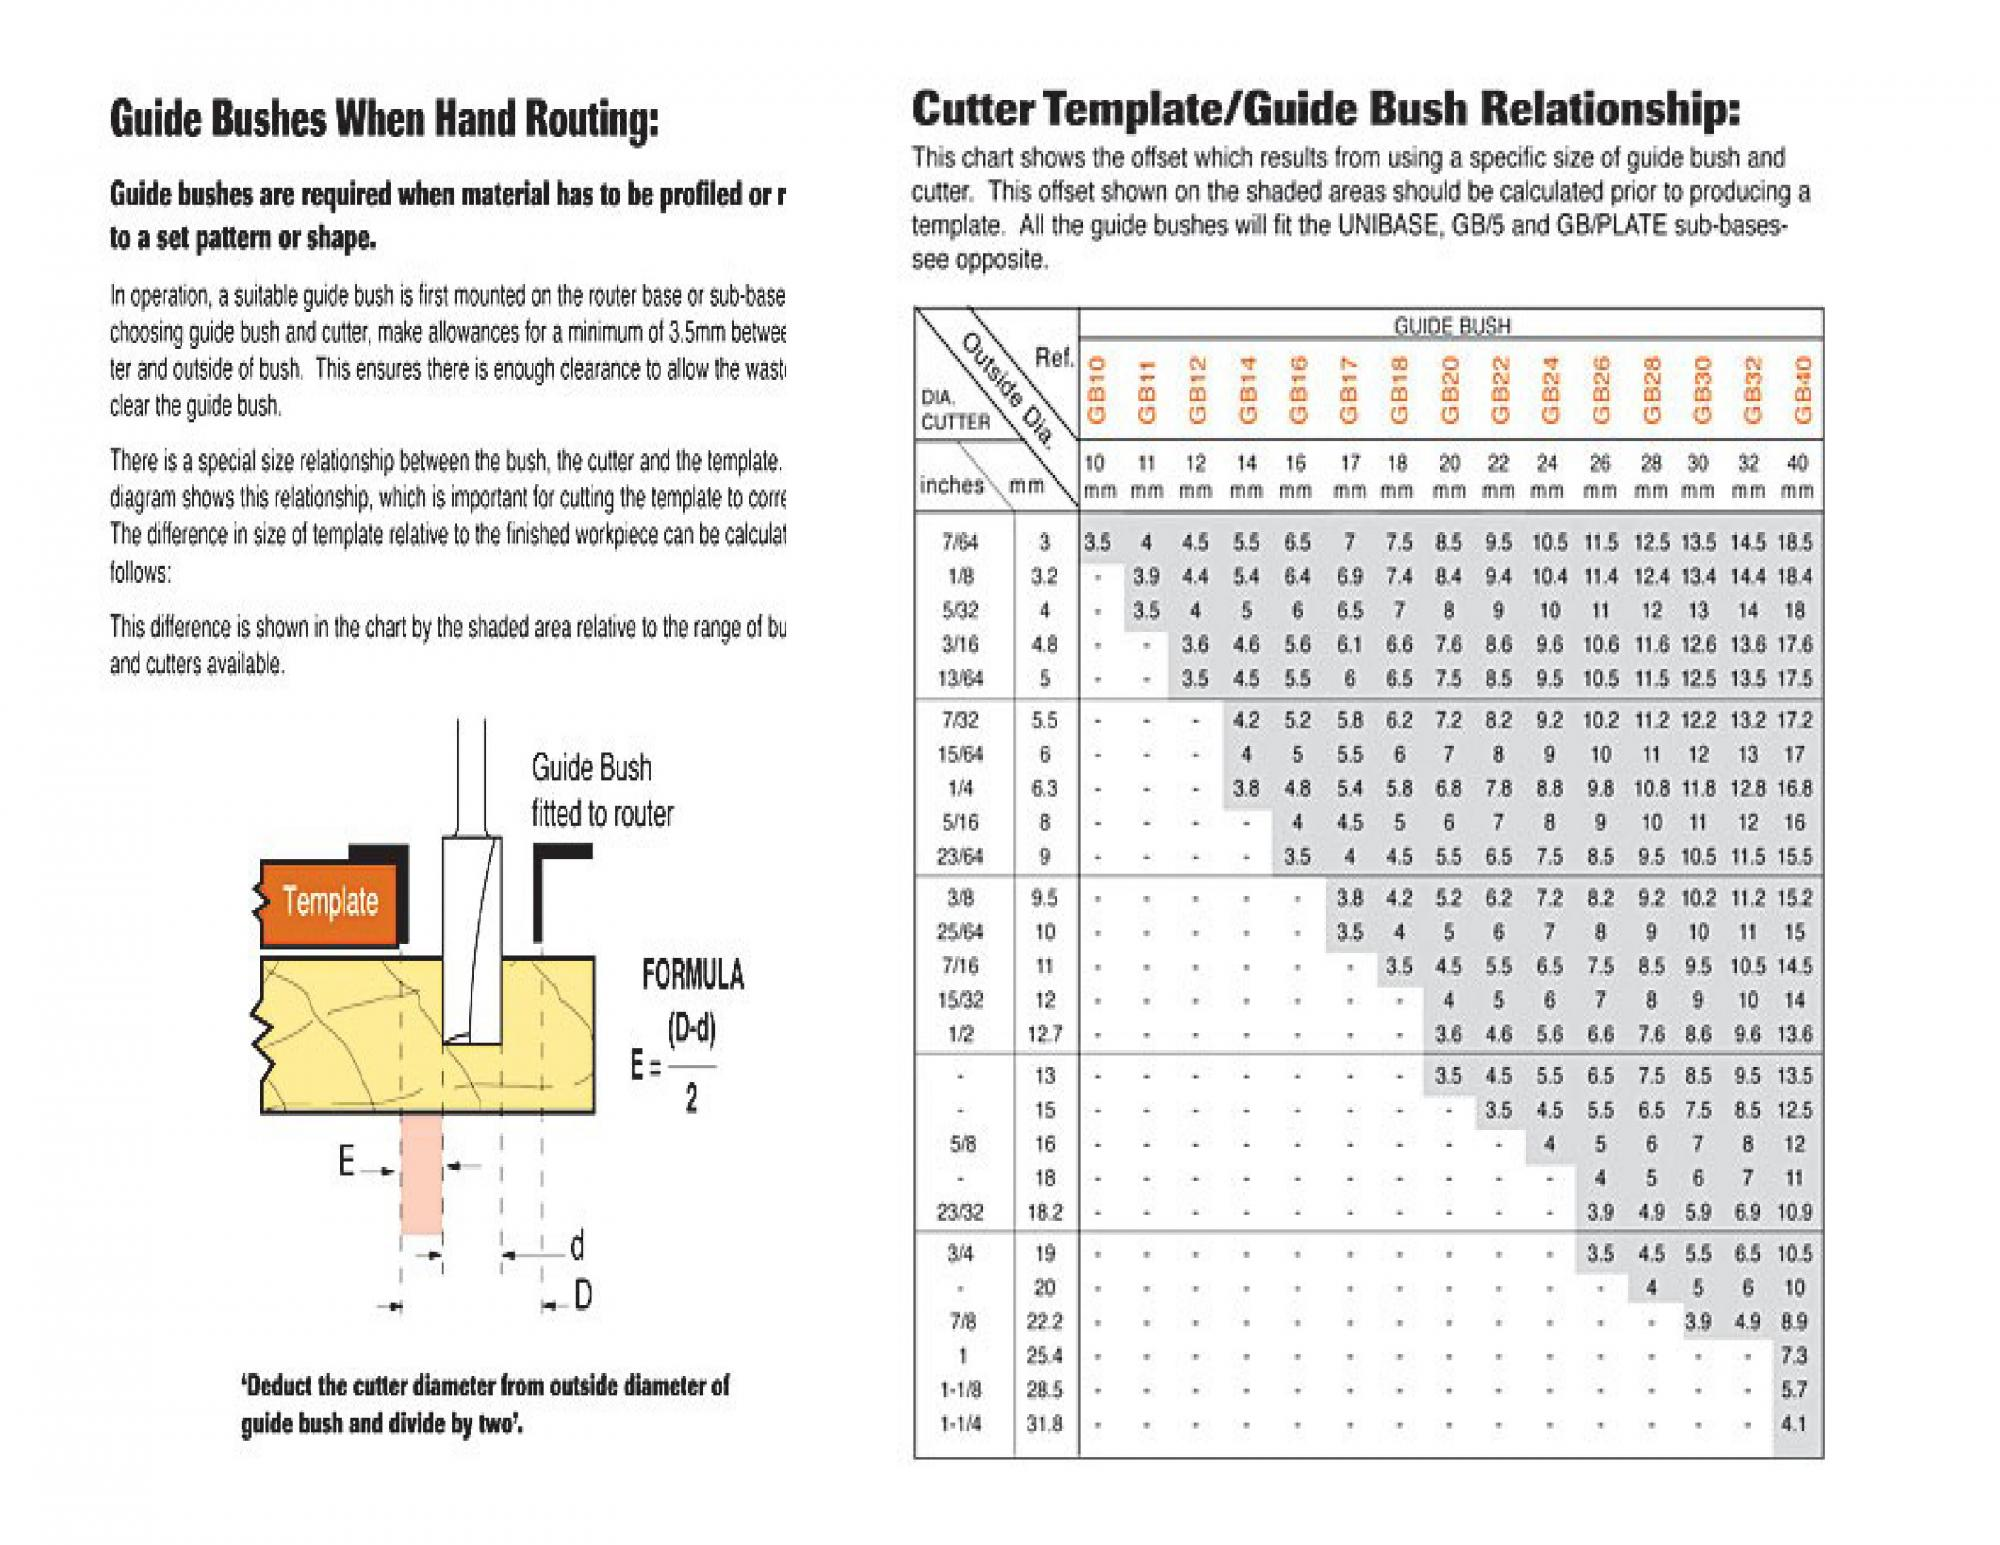 Bosch template guide manual - Router Forums